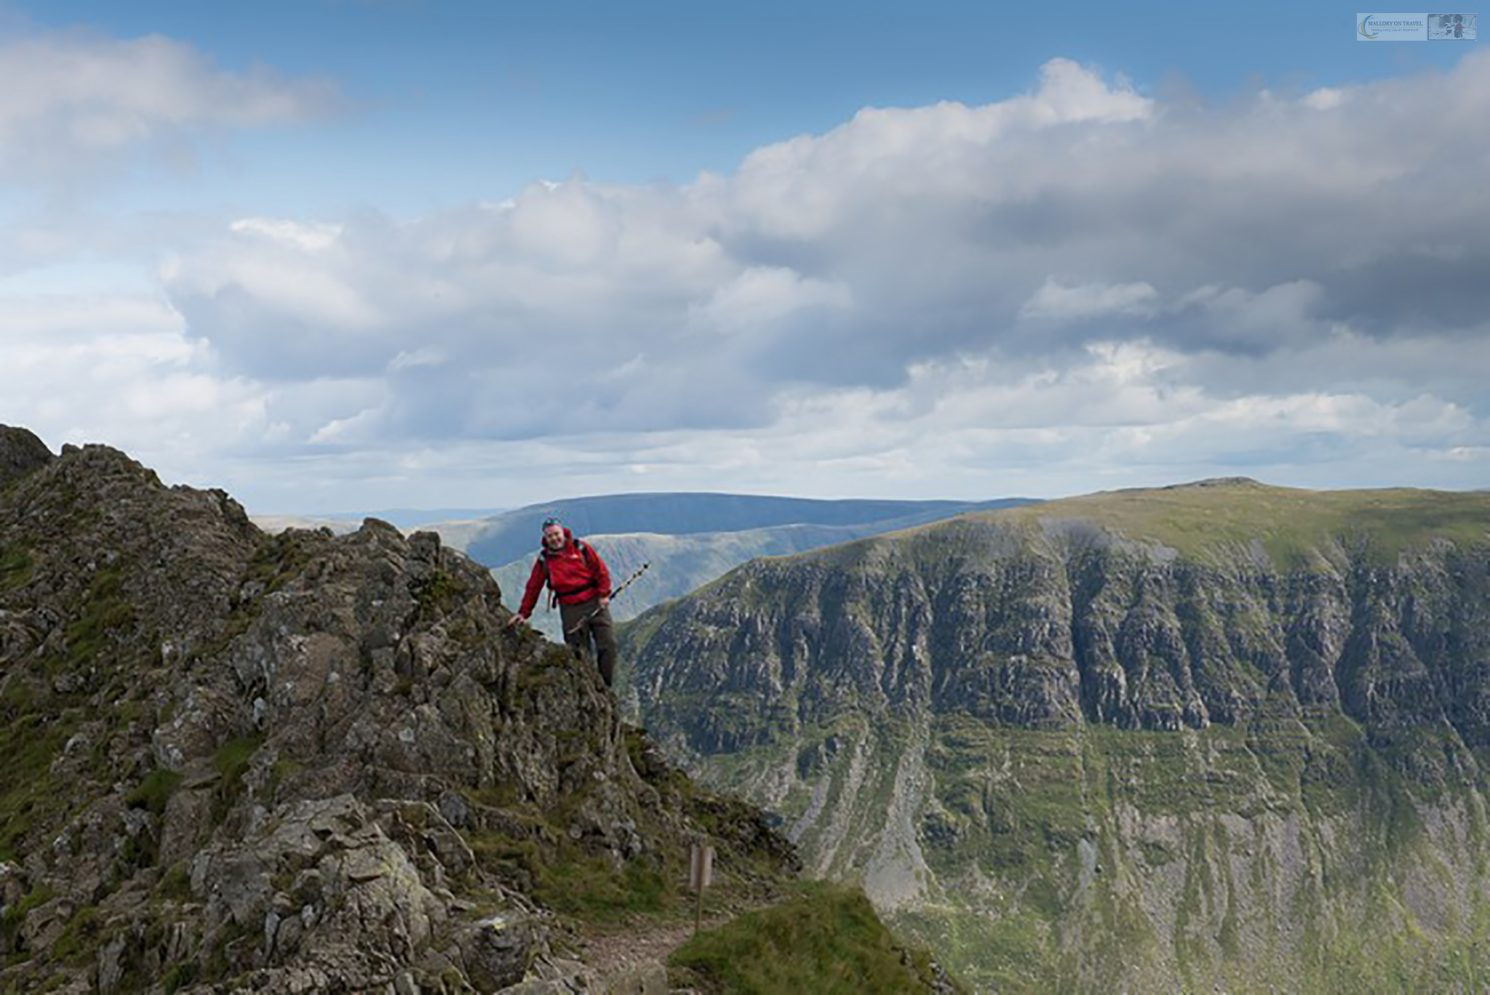 Adventure in the English Lakes, trekking and scrambling on Striding Edge on Helvellyn in Cumbria, Lakeland in the United Kingdom on Mallory on Travel adventure travel, photography, travel Lakes 2014-3